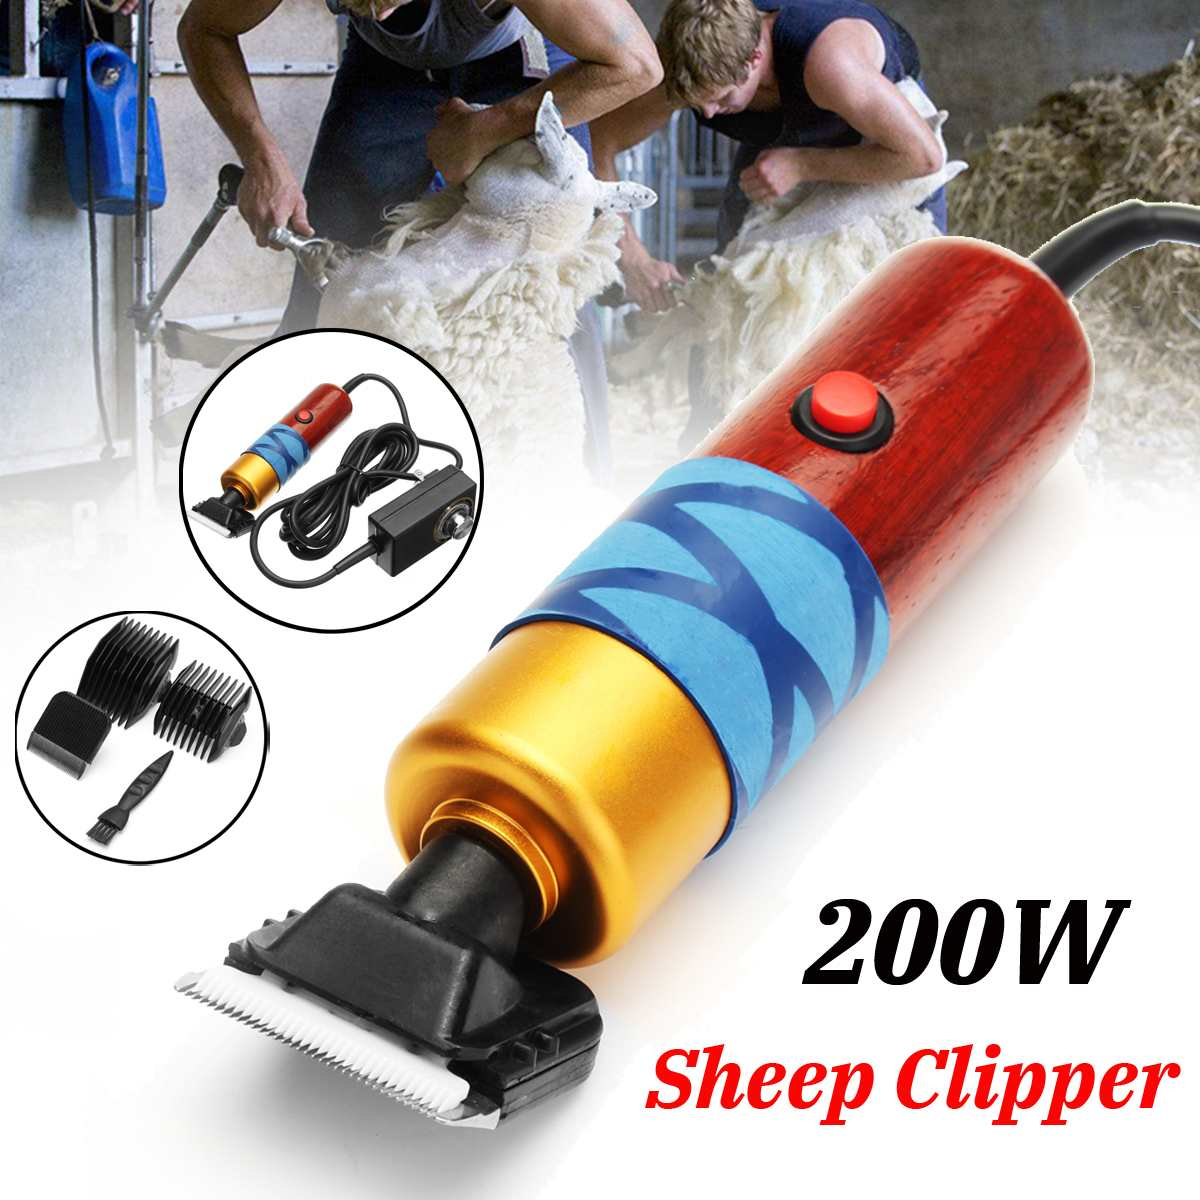 200W Electric Sheep Clipper Professional Dog Grooming Kit For Rabbit Pet Dog Grooming Tools 100-240V